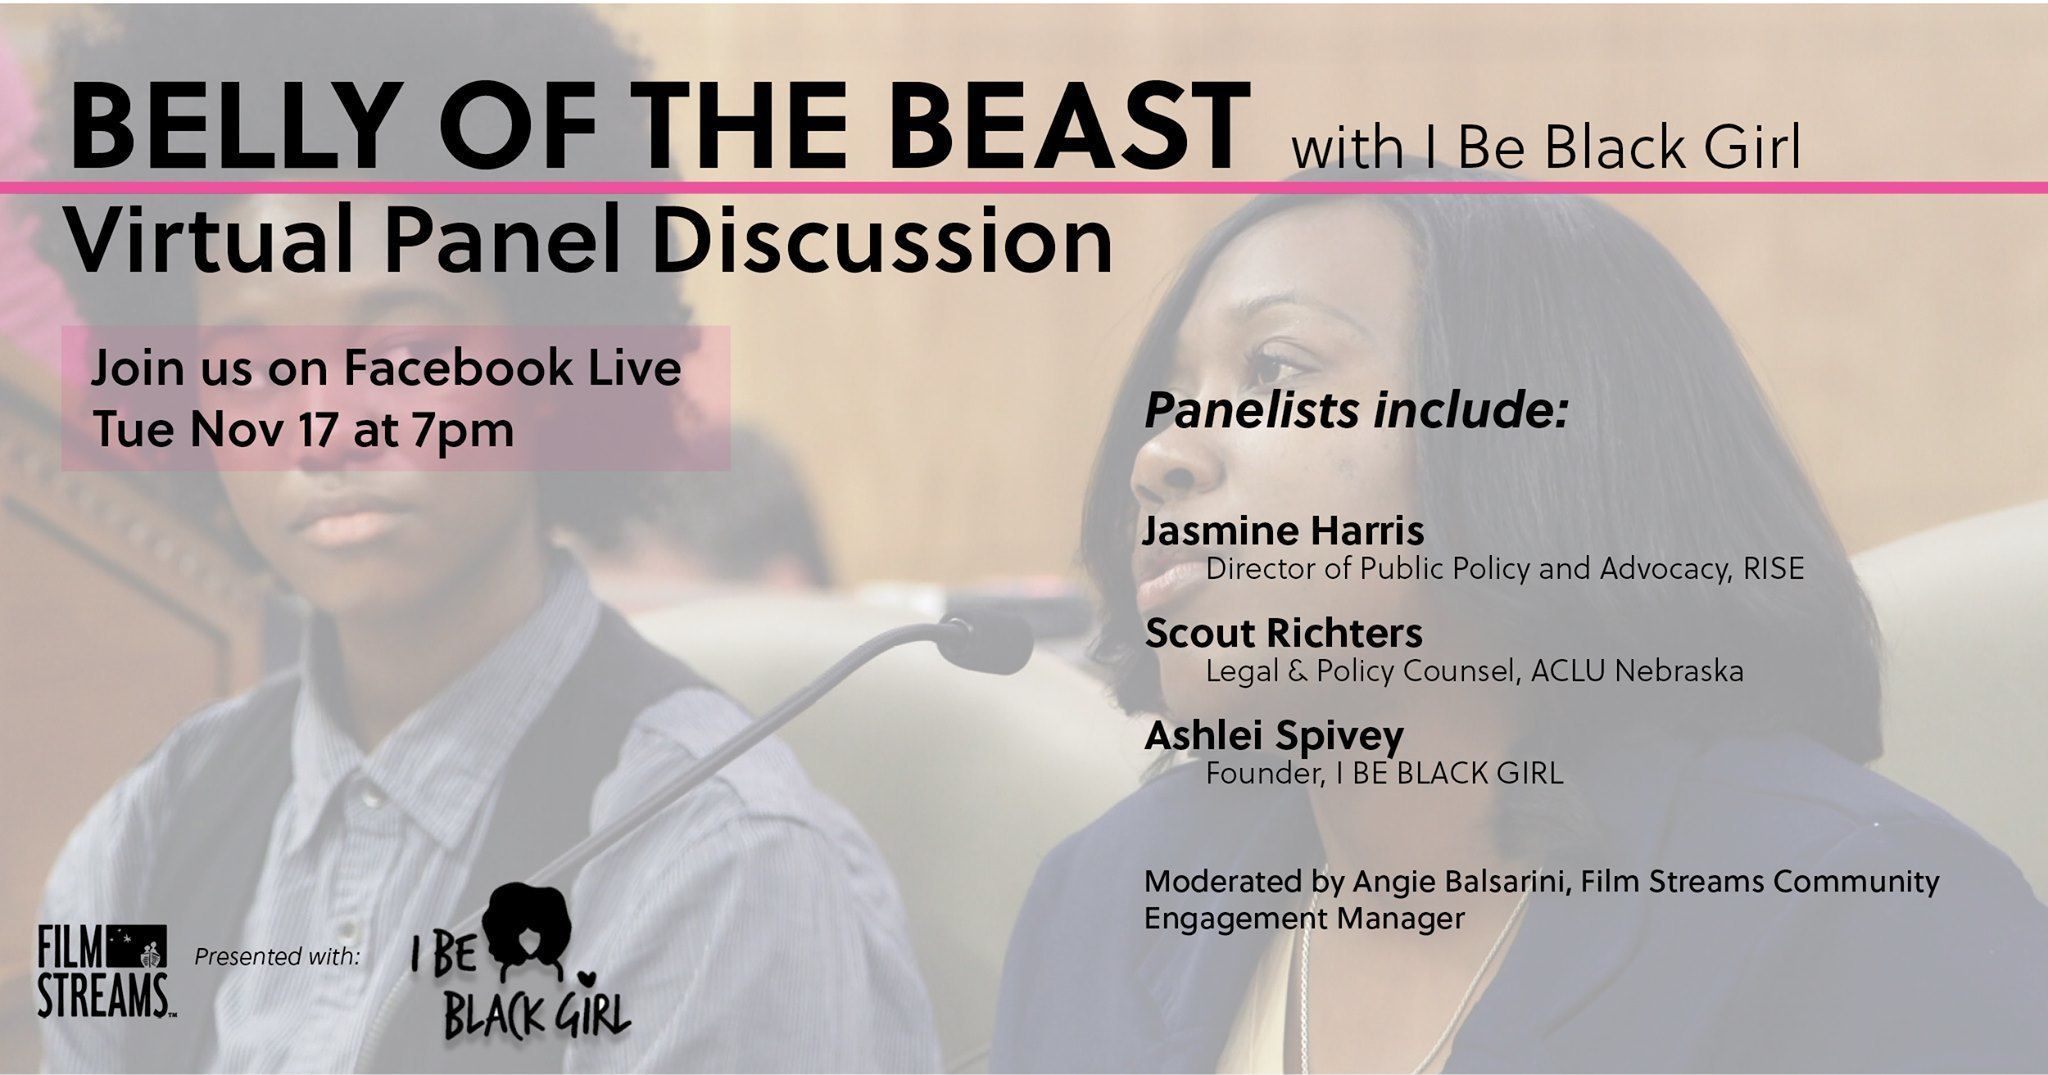 Virtual Panel Discussion: Belly of the Beast with I Be Black Girl